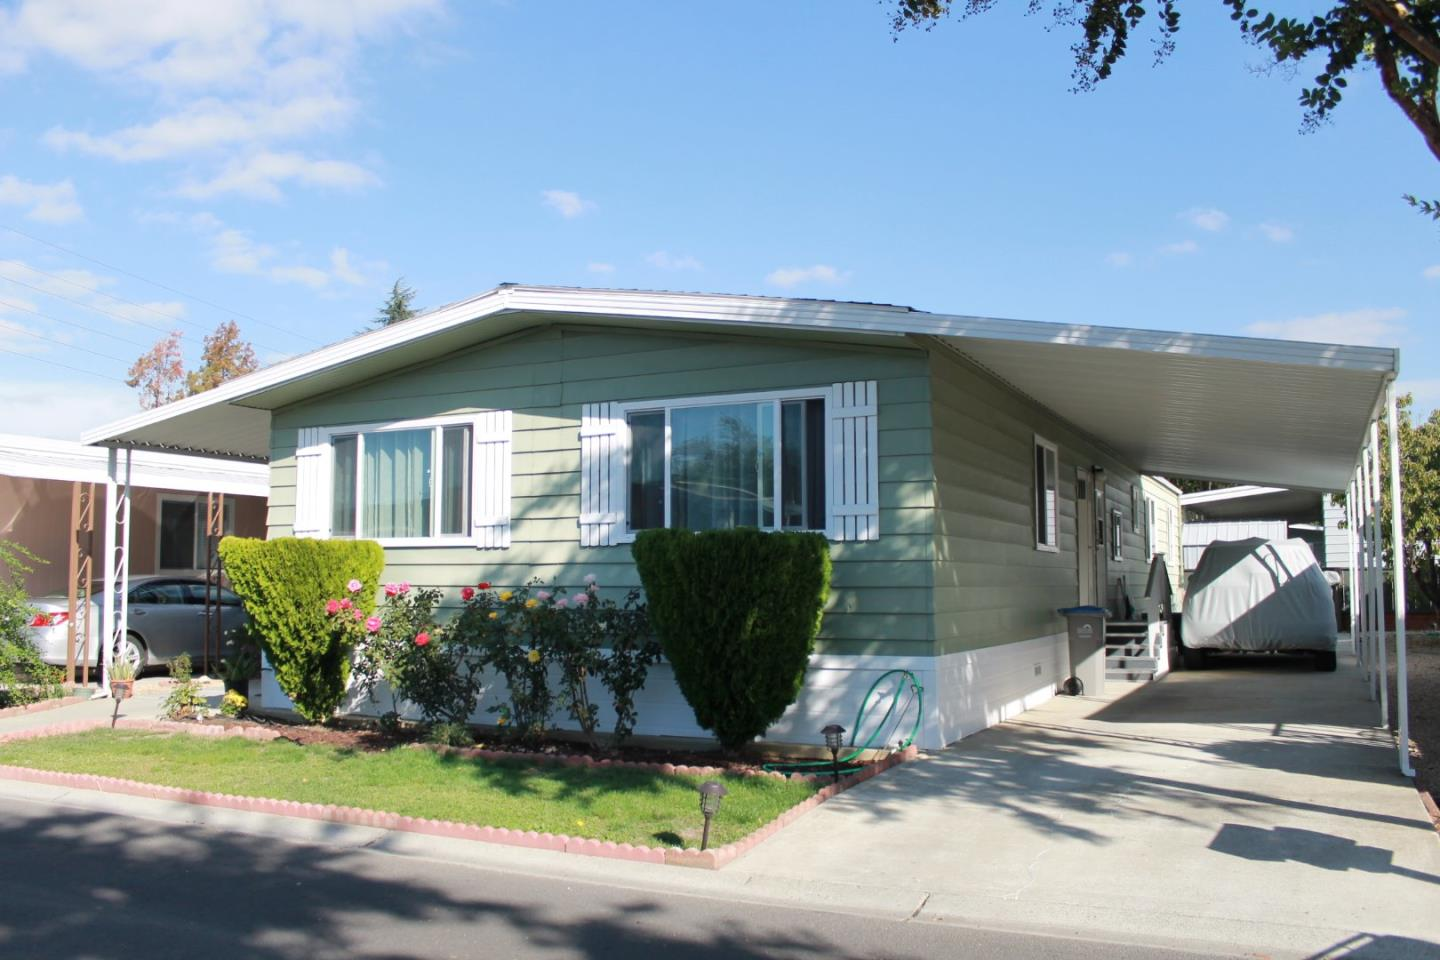 2870 MOSS HOLLOW San Jose, CA 95121 - MLS #: ML81688225